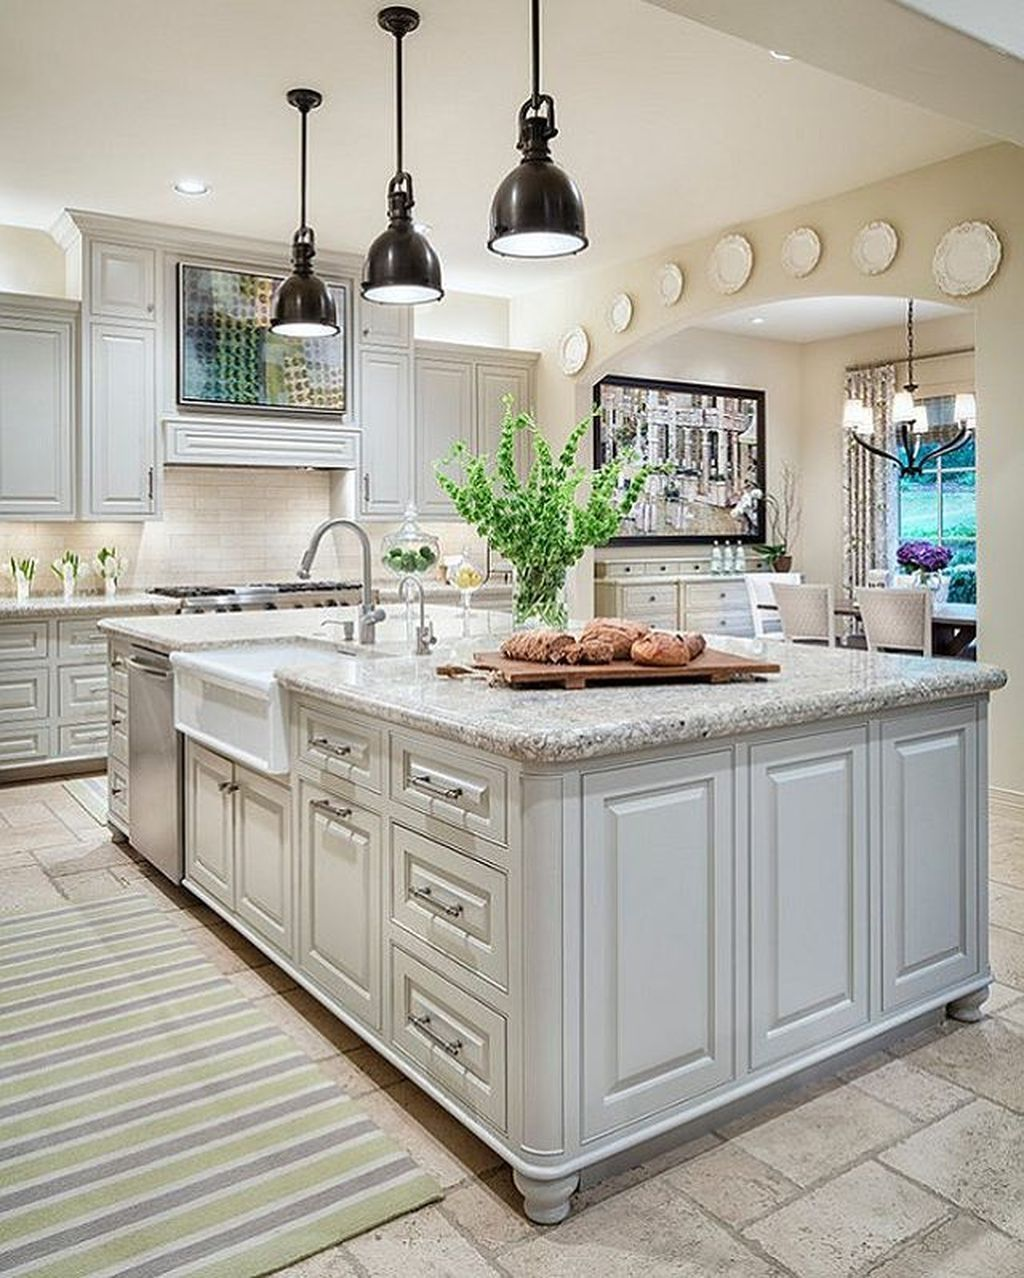 Interior Design Ideas Kitchen Color Schemes: Pin By Chrystal Welch On Kitchen